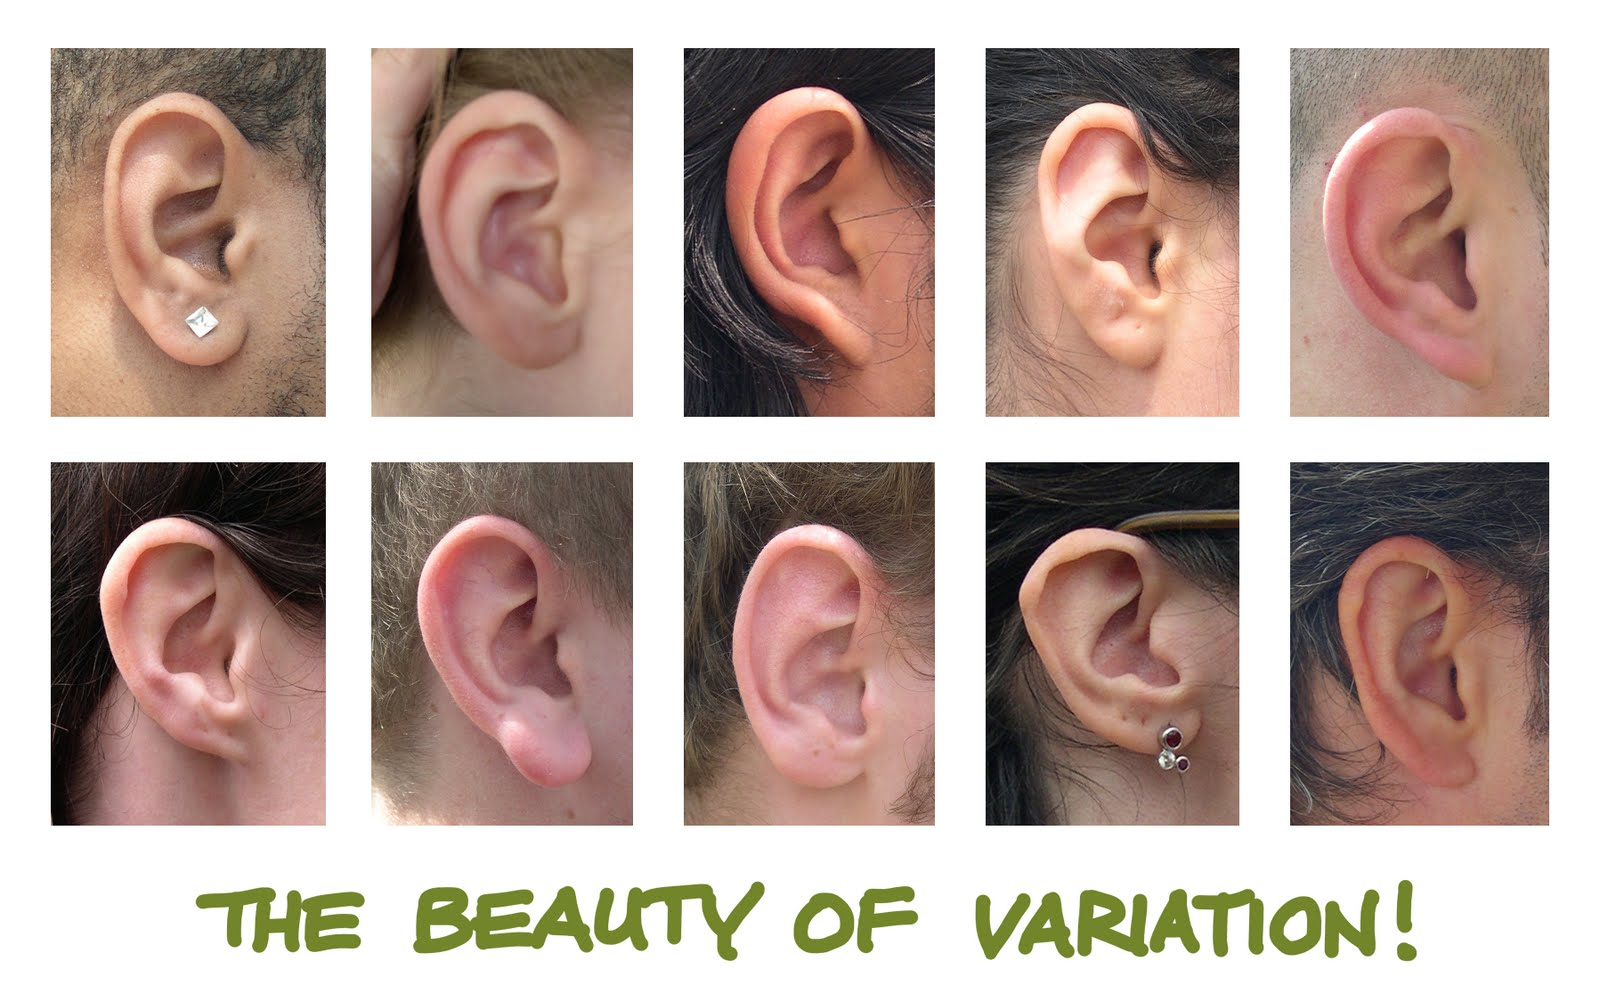 Human Ears Drawing At Getdrawings Com Free For Personal Use Human